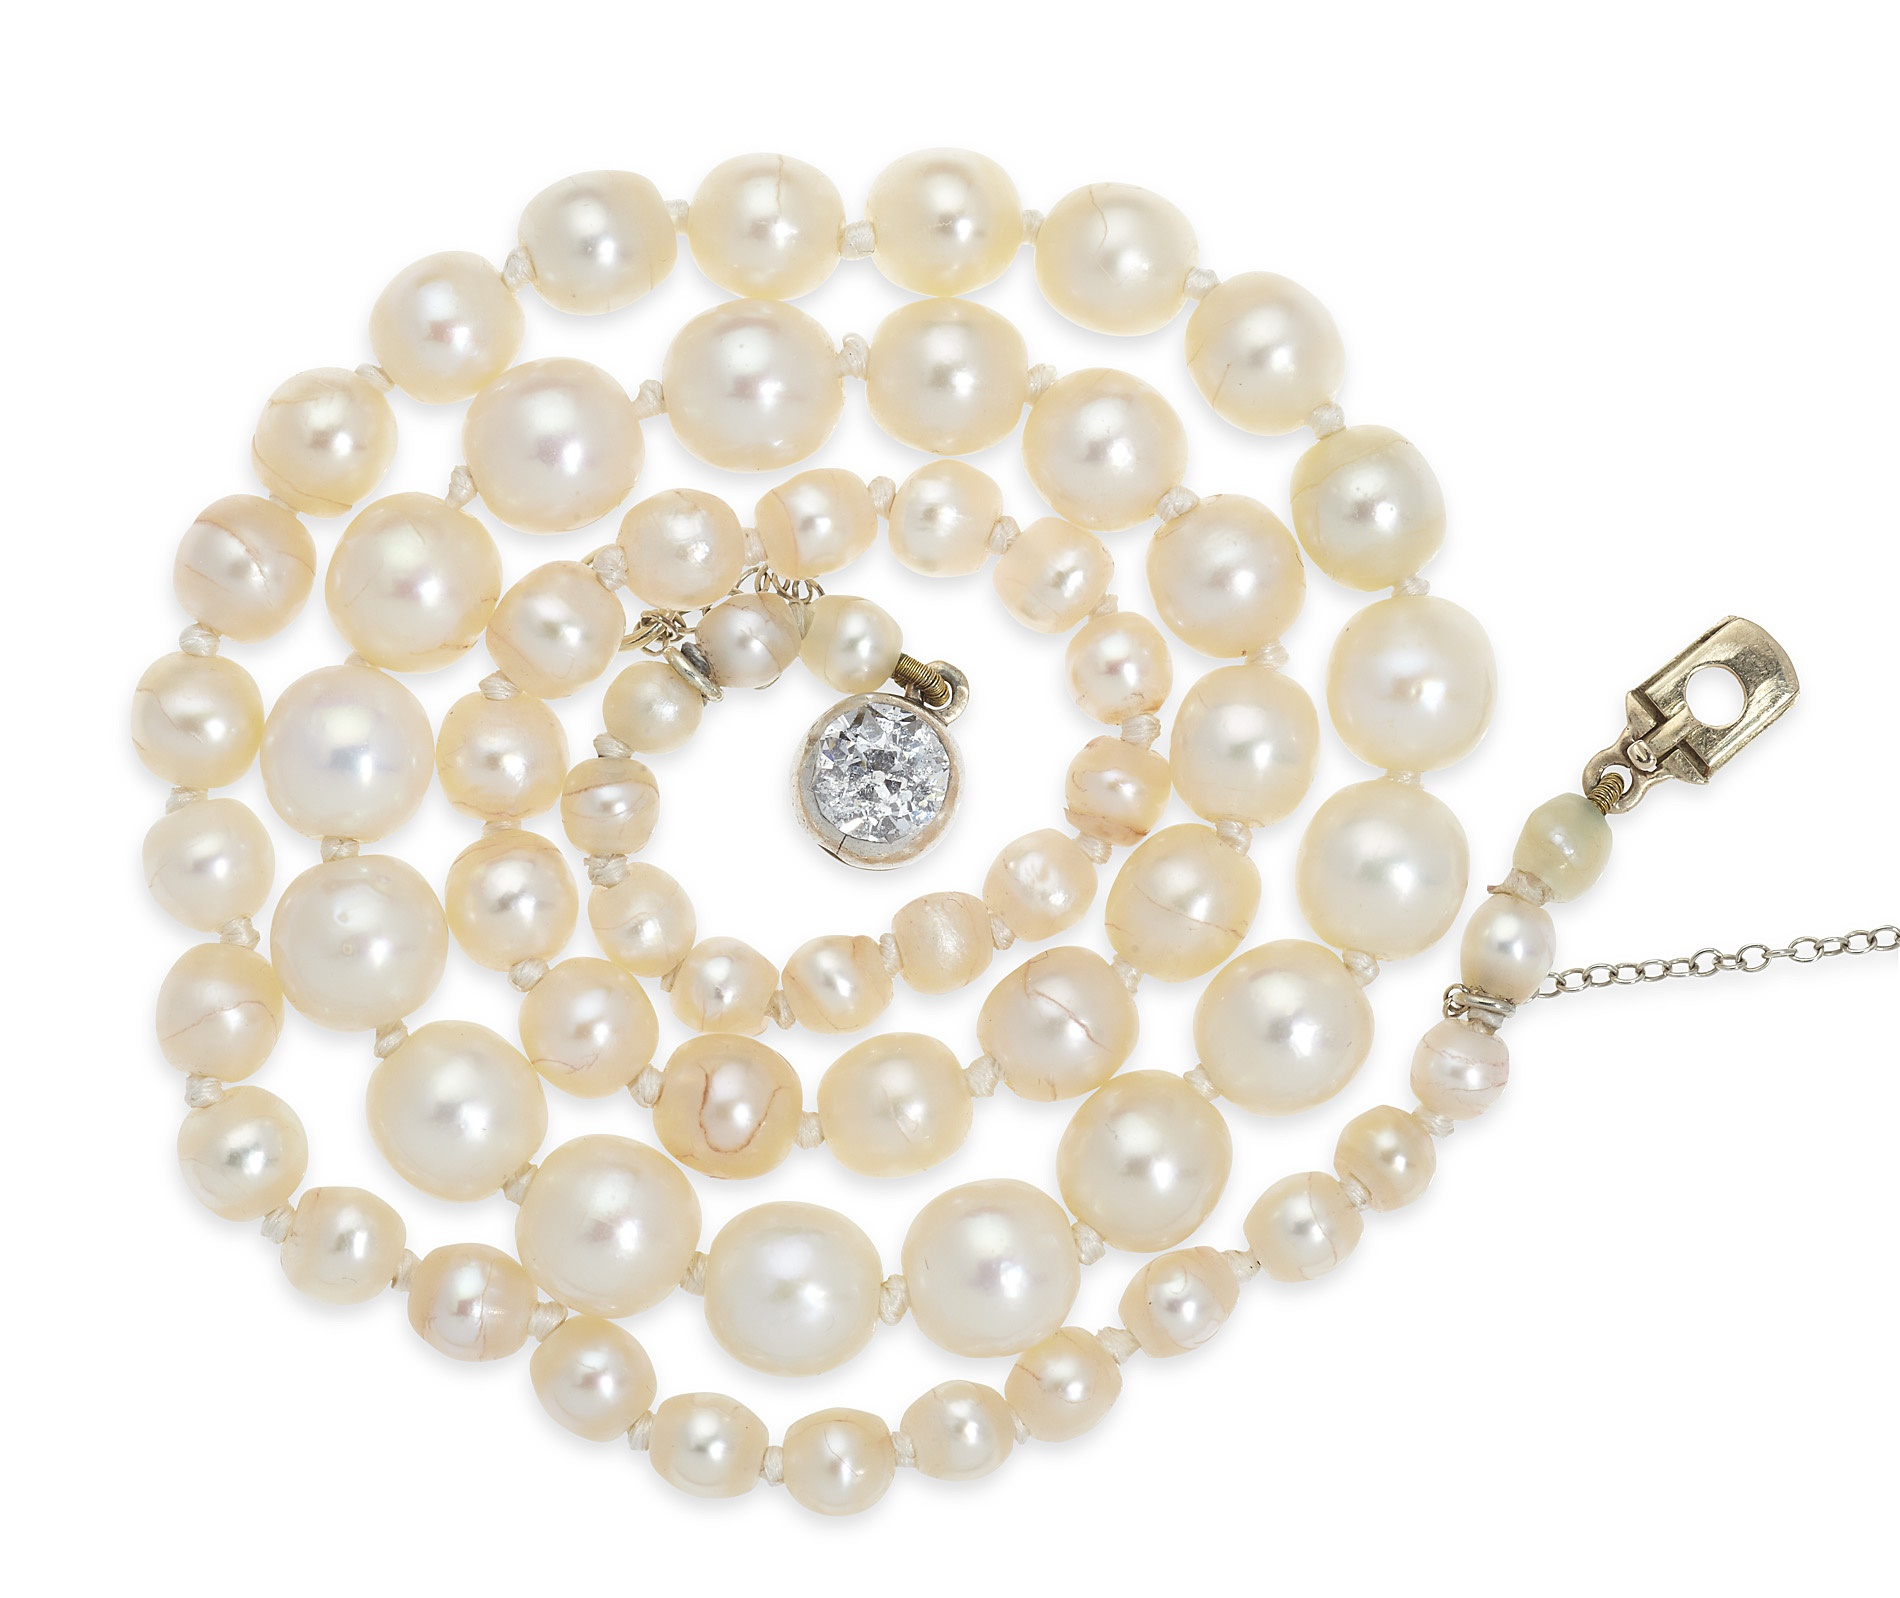 A graduated natural pearl necklace